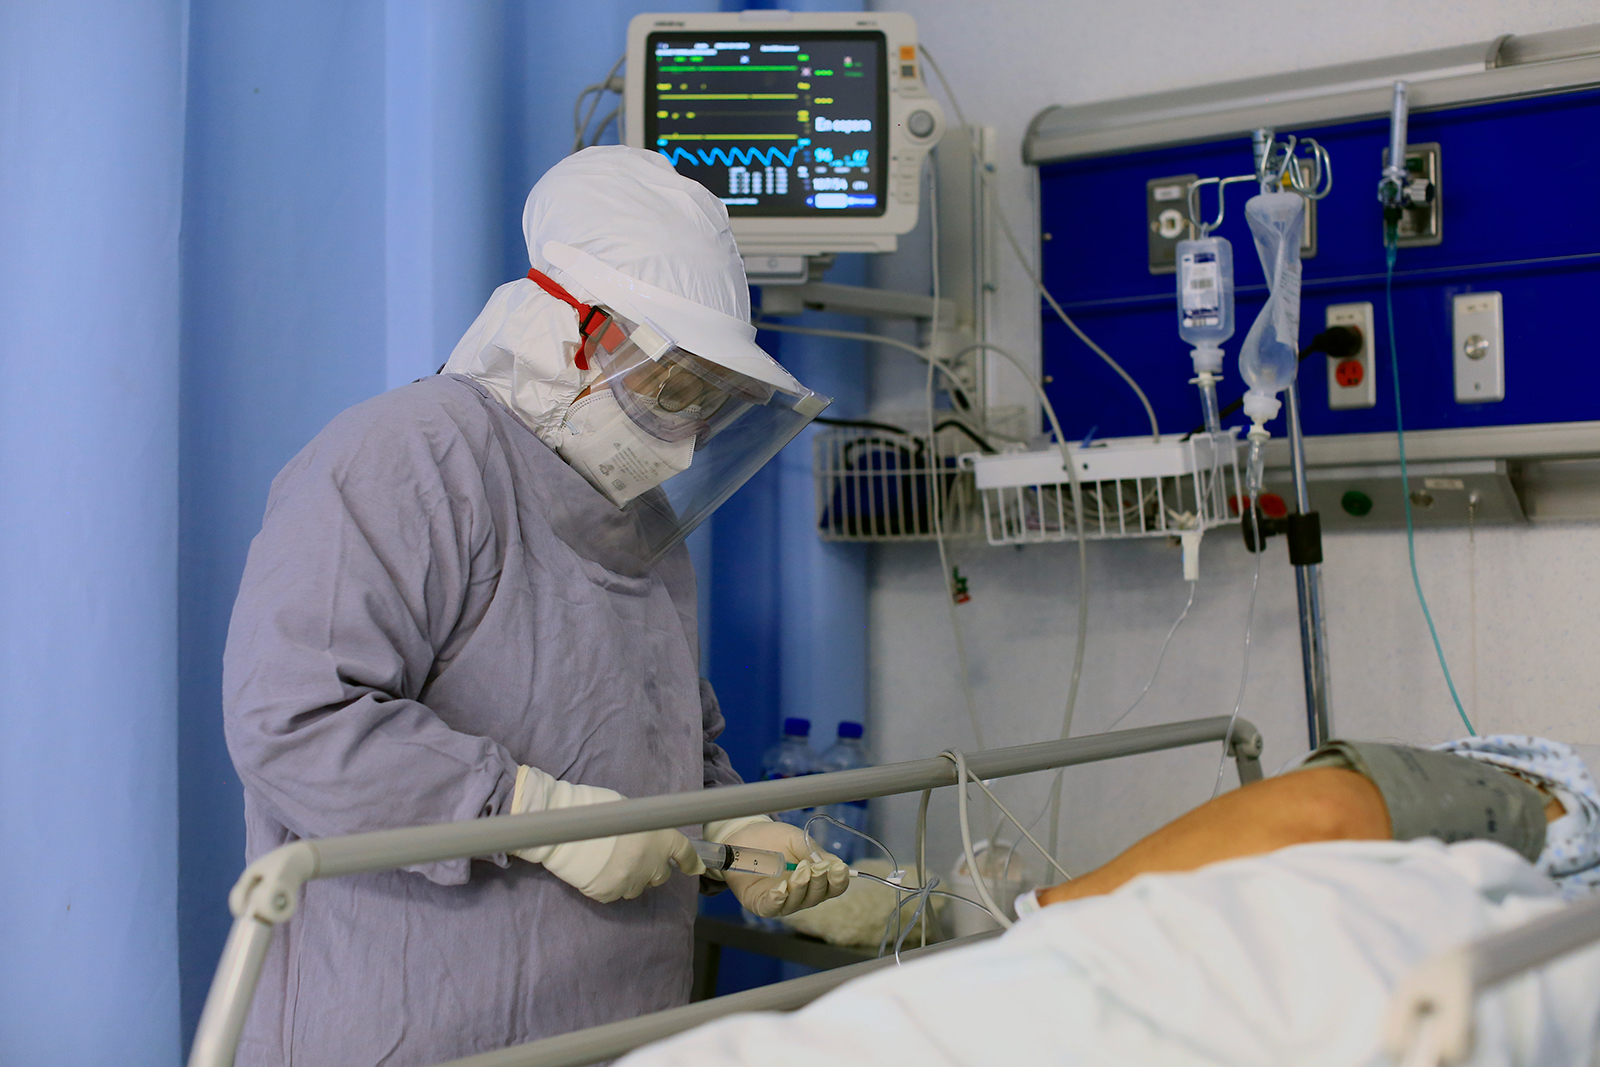 A nurse supplies medicine for a Covid-19 patient at Hospital General Leon on July 23, in Leon, Mexico.